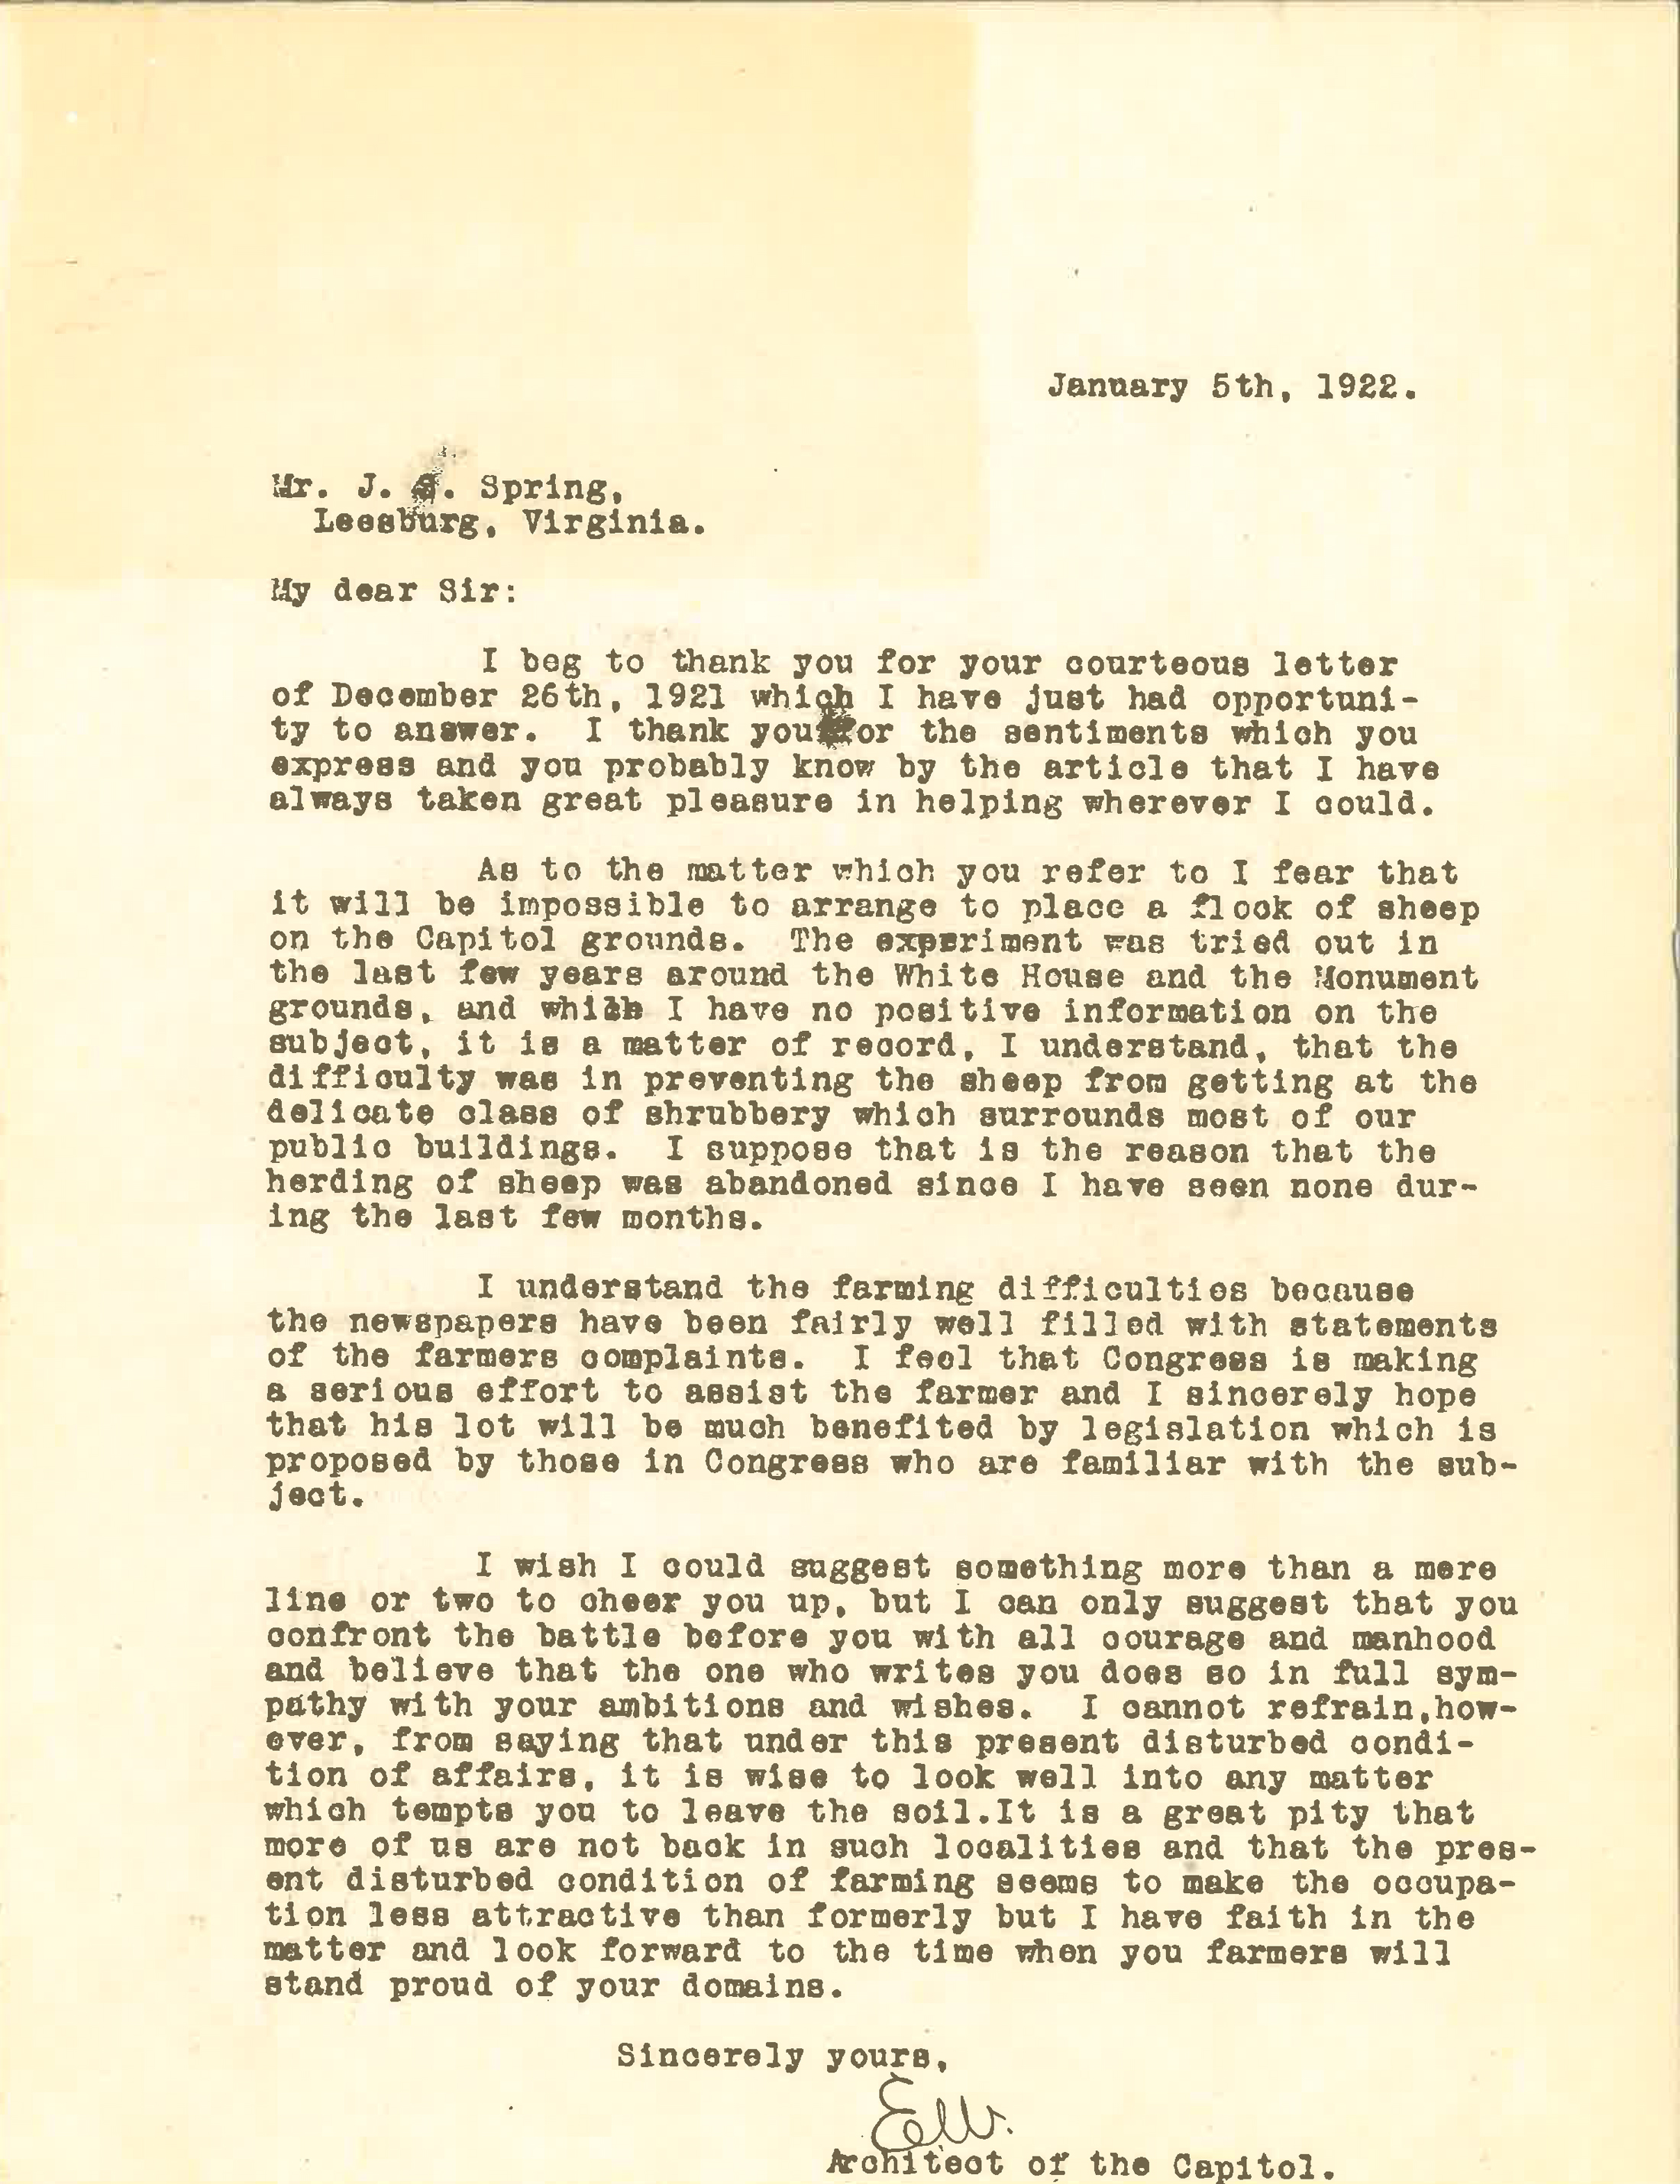 Elliot Woods response to J.S. Spring - January 5, 1922